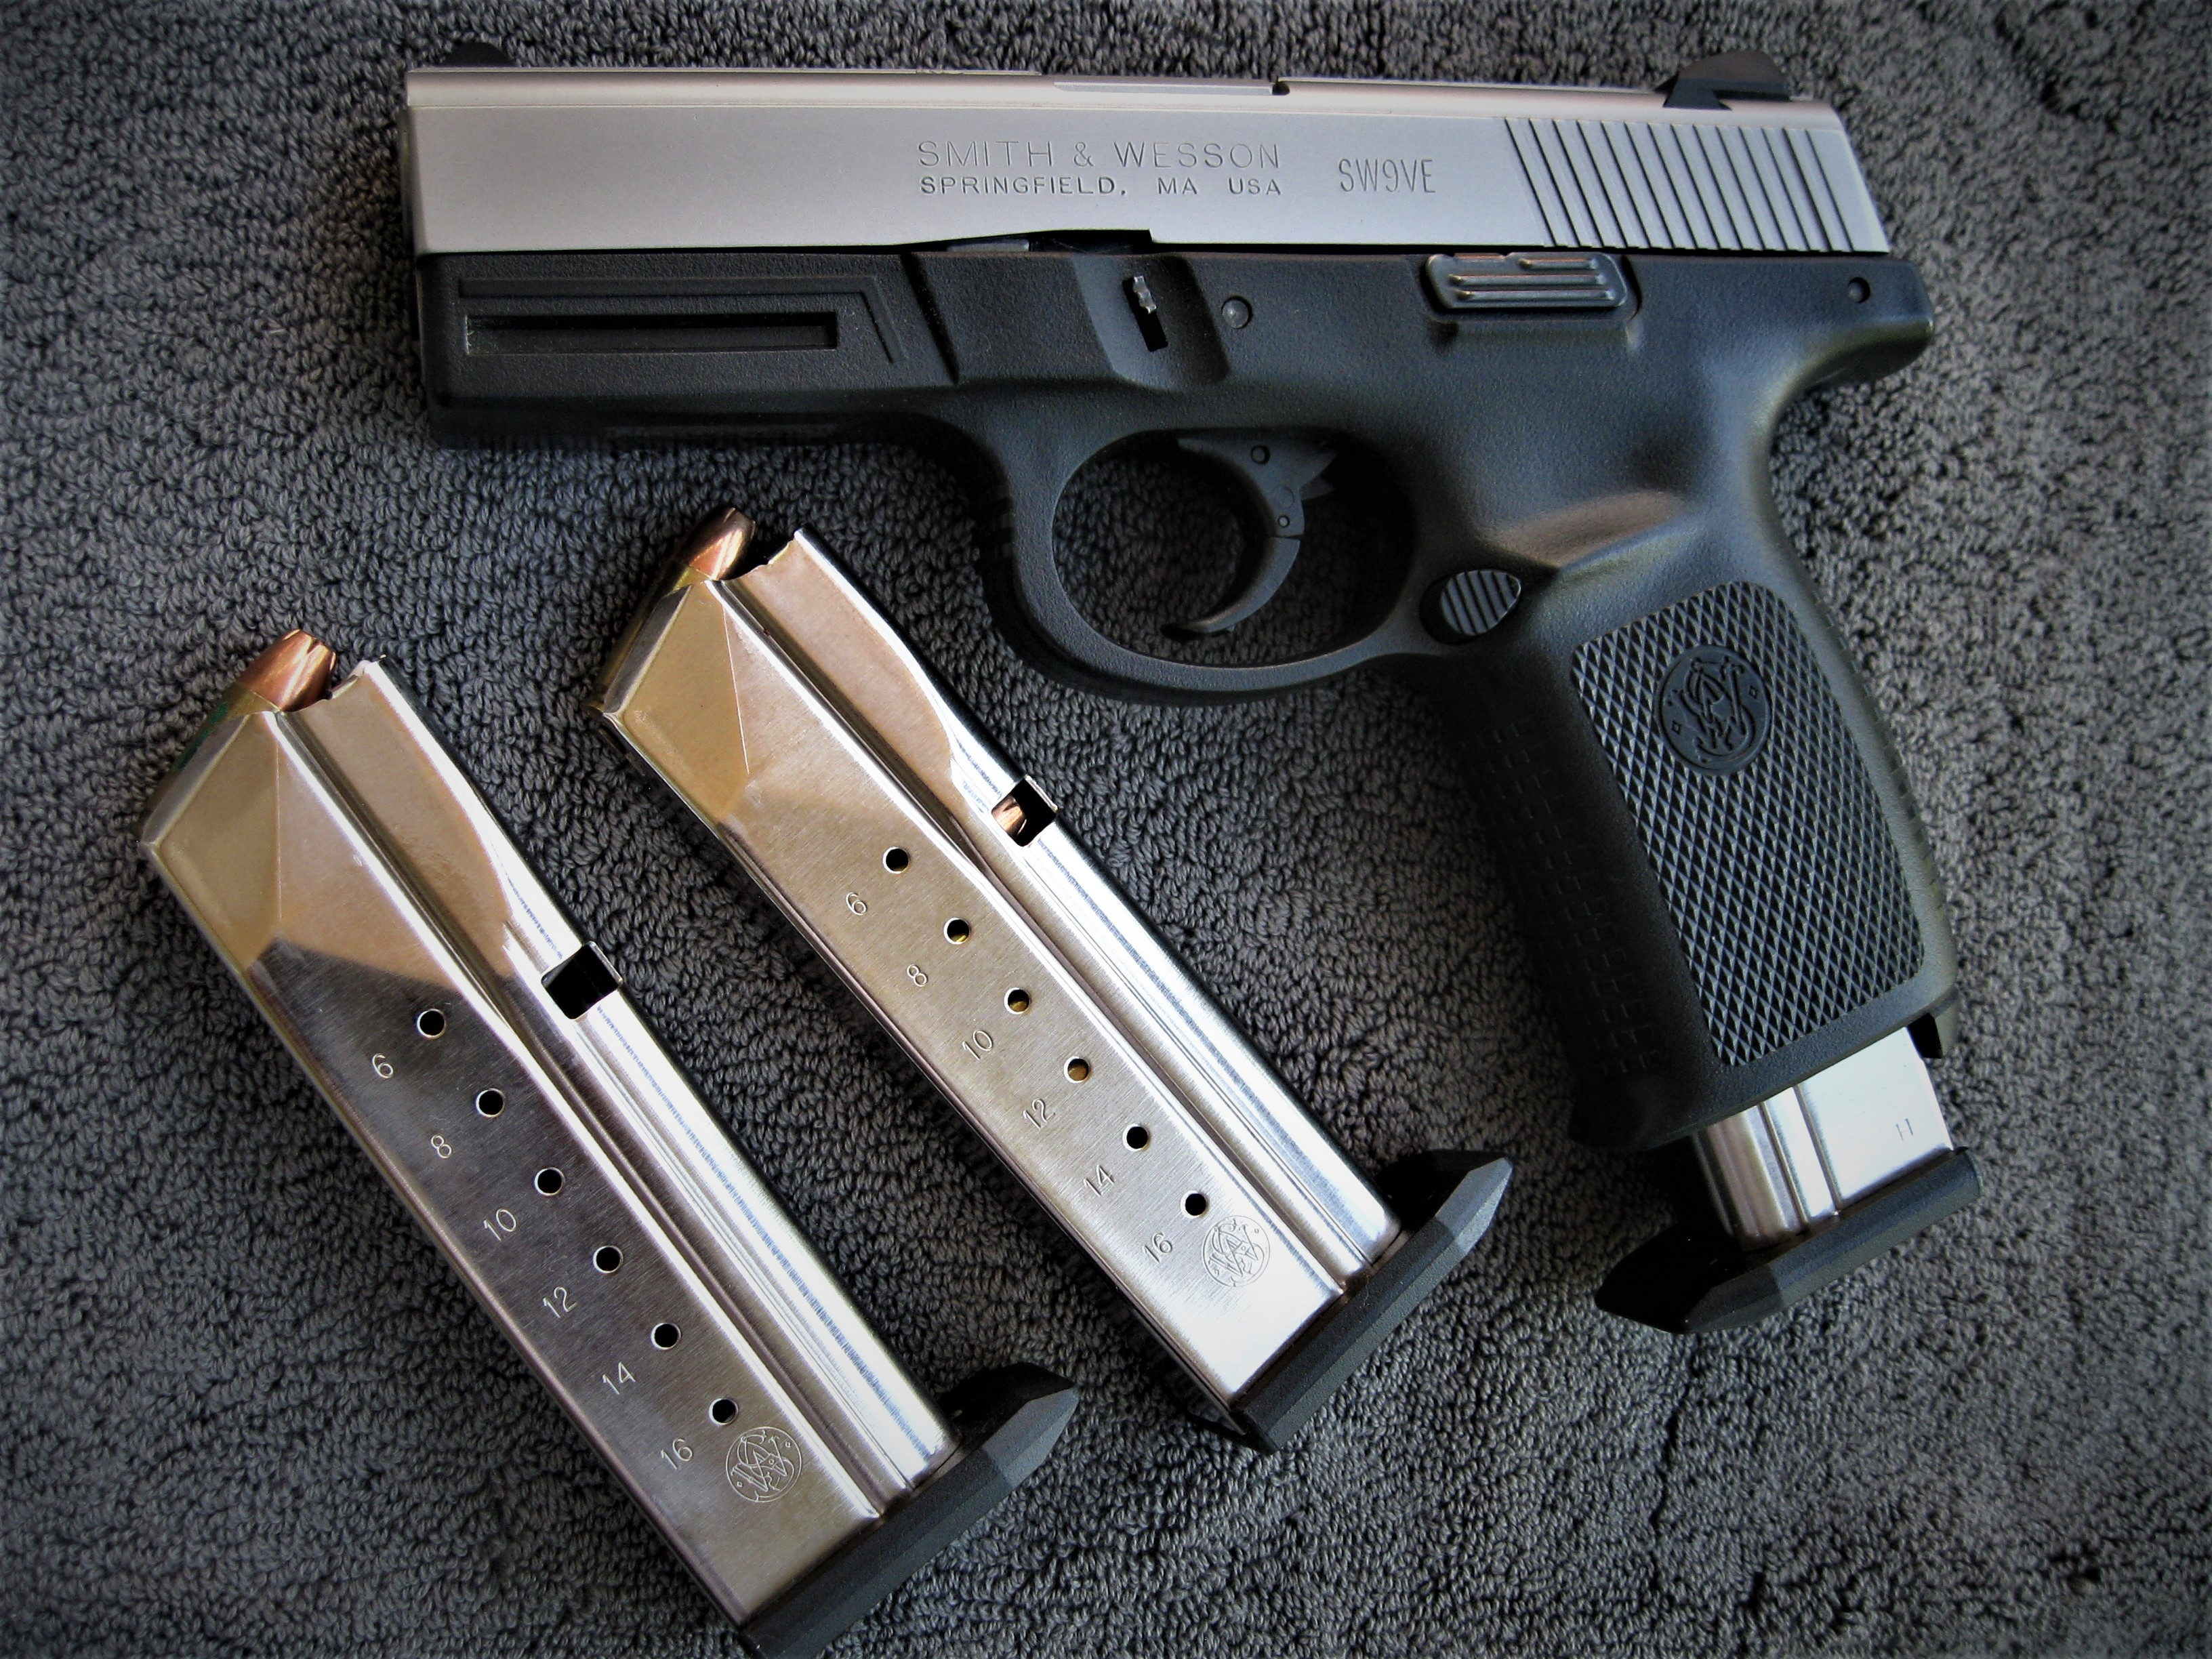 The Smith & Wesson SW9VE is a great option for self defense.